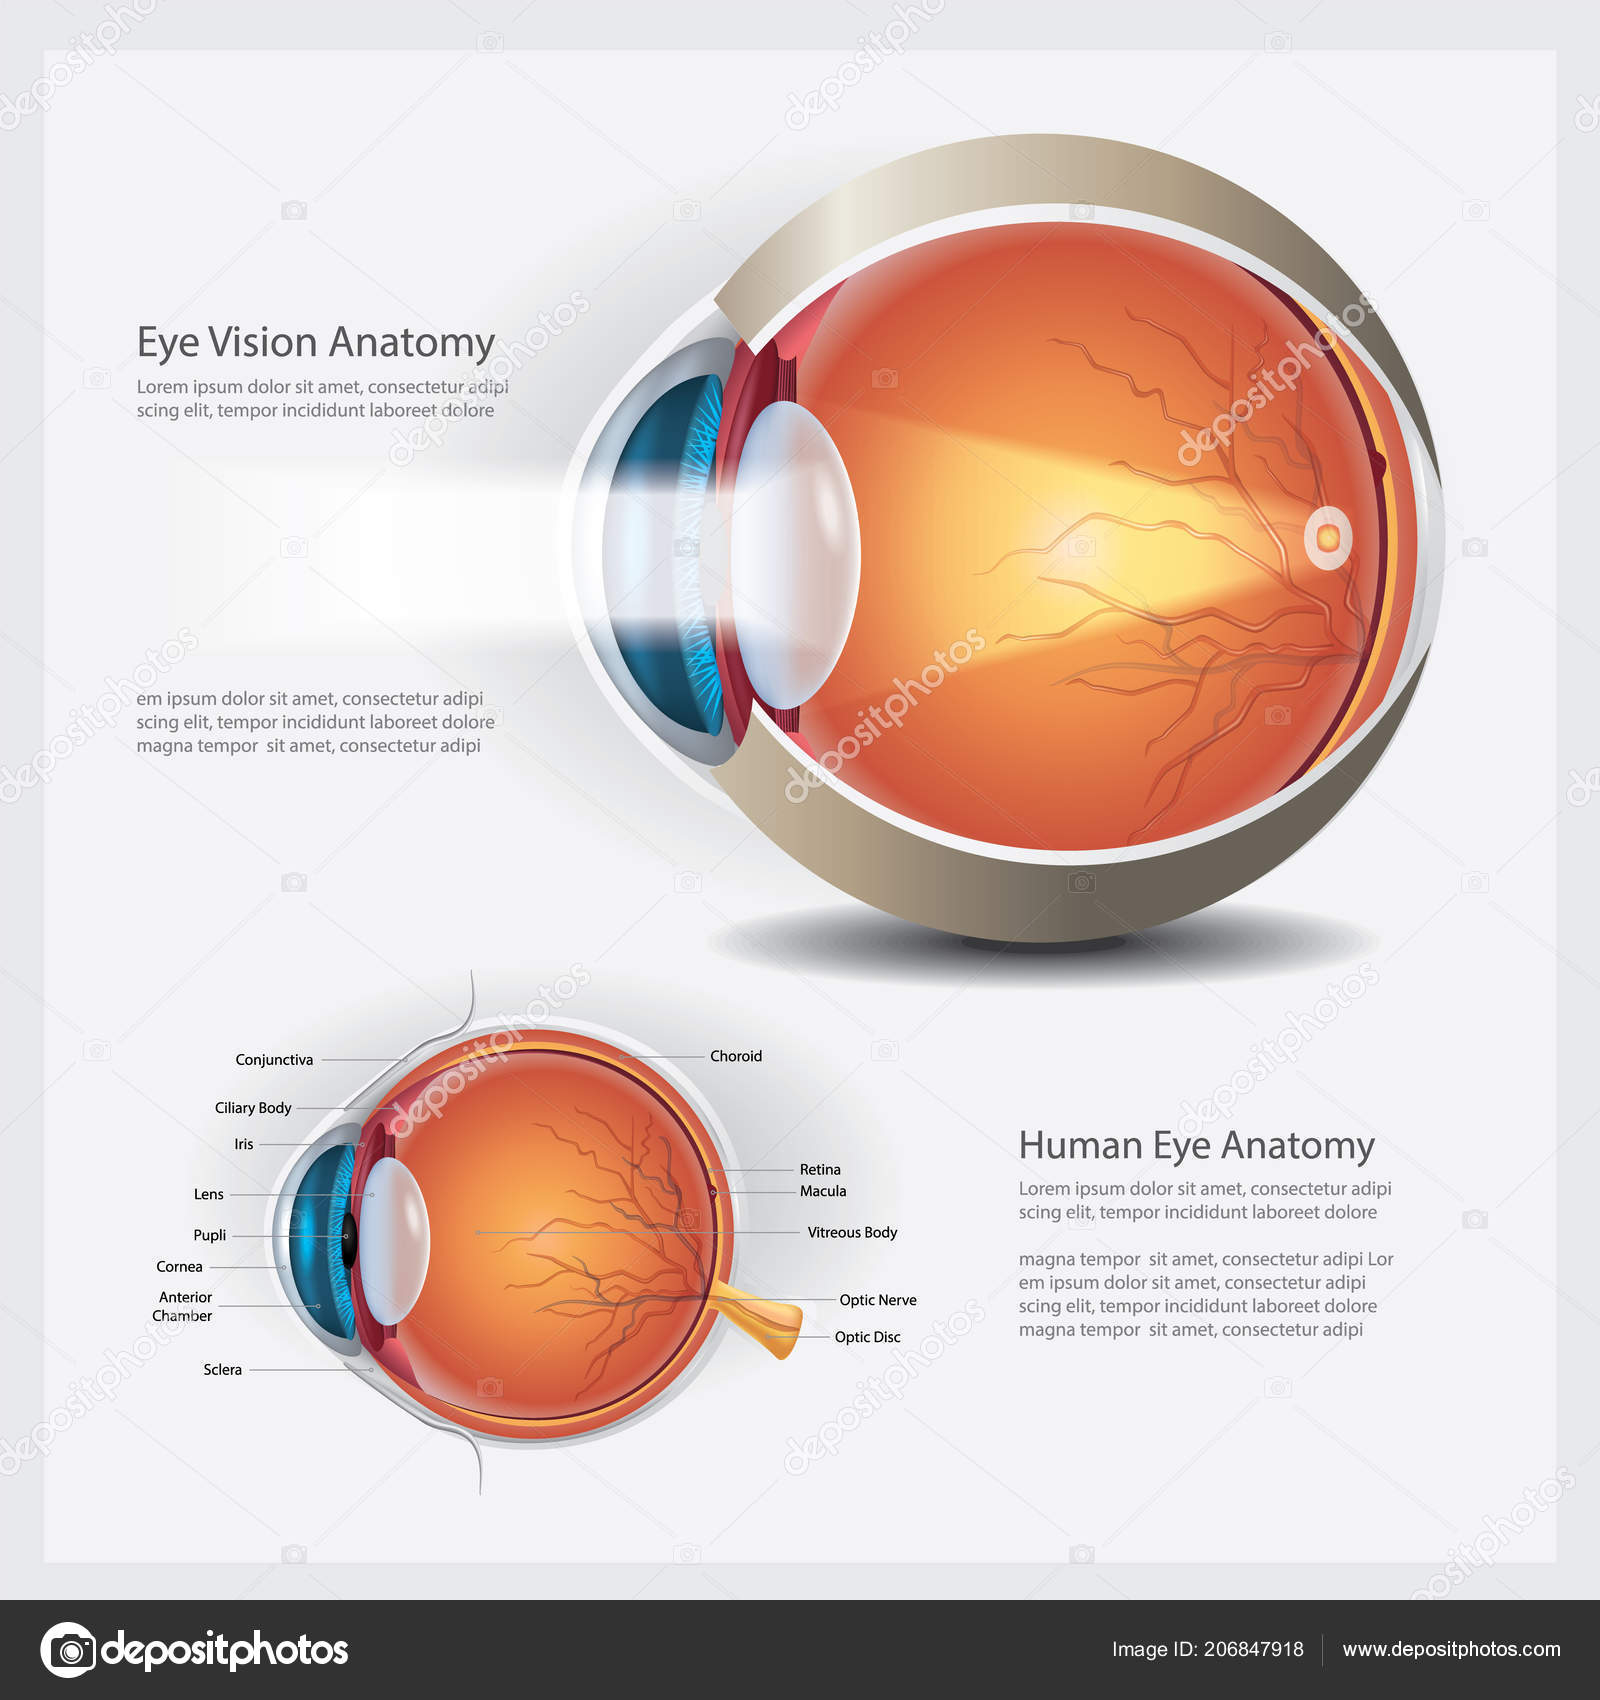 Human Eye Anatomy Vector Illustration — Stock Vector © pongpongching ...